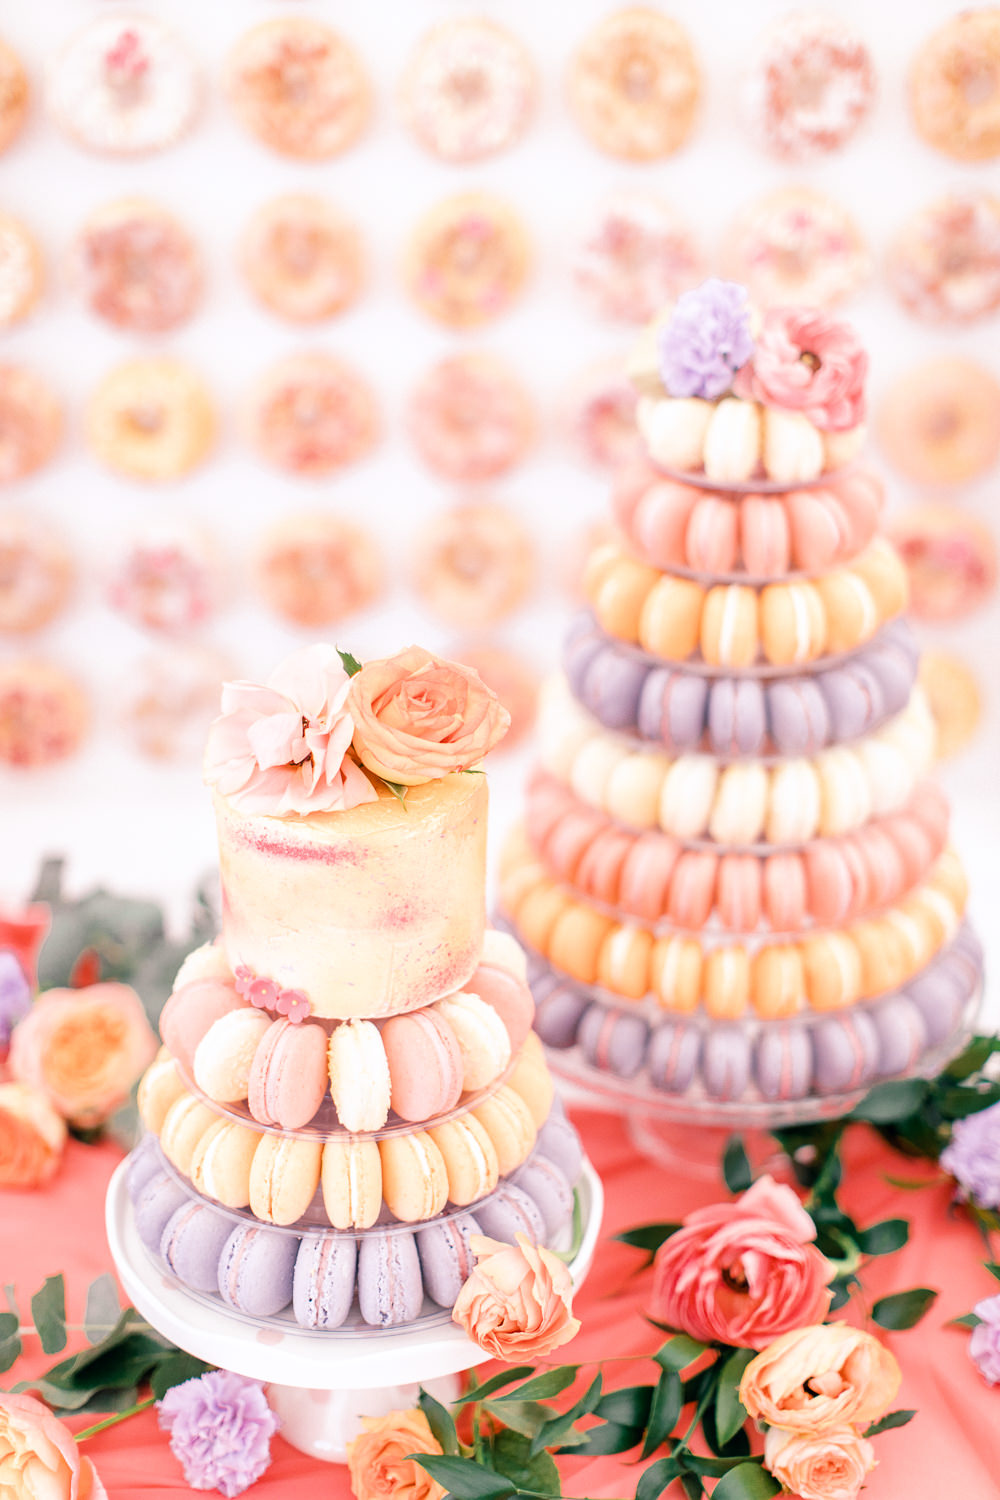 Macaron Tower Cake Pastel Coral Peach Wedding Ideas Courtney Dee Photography